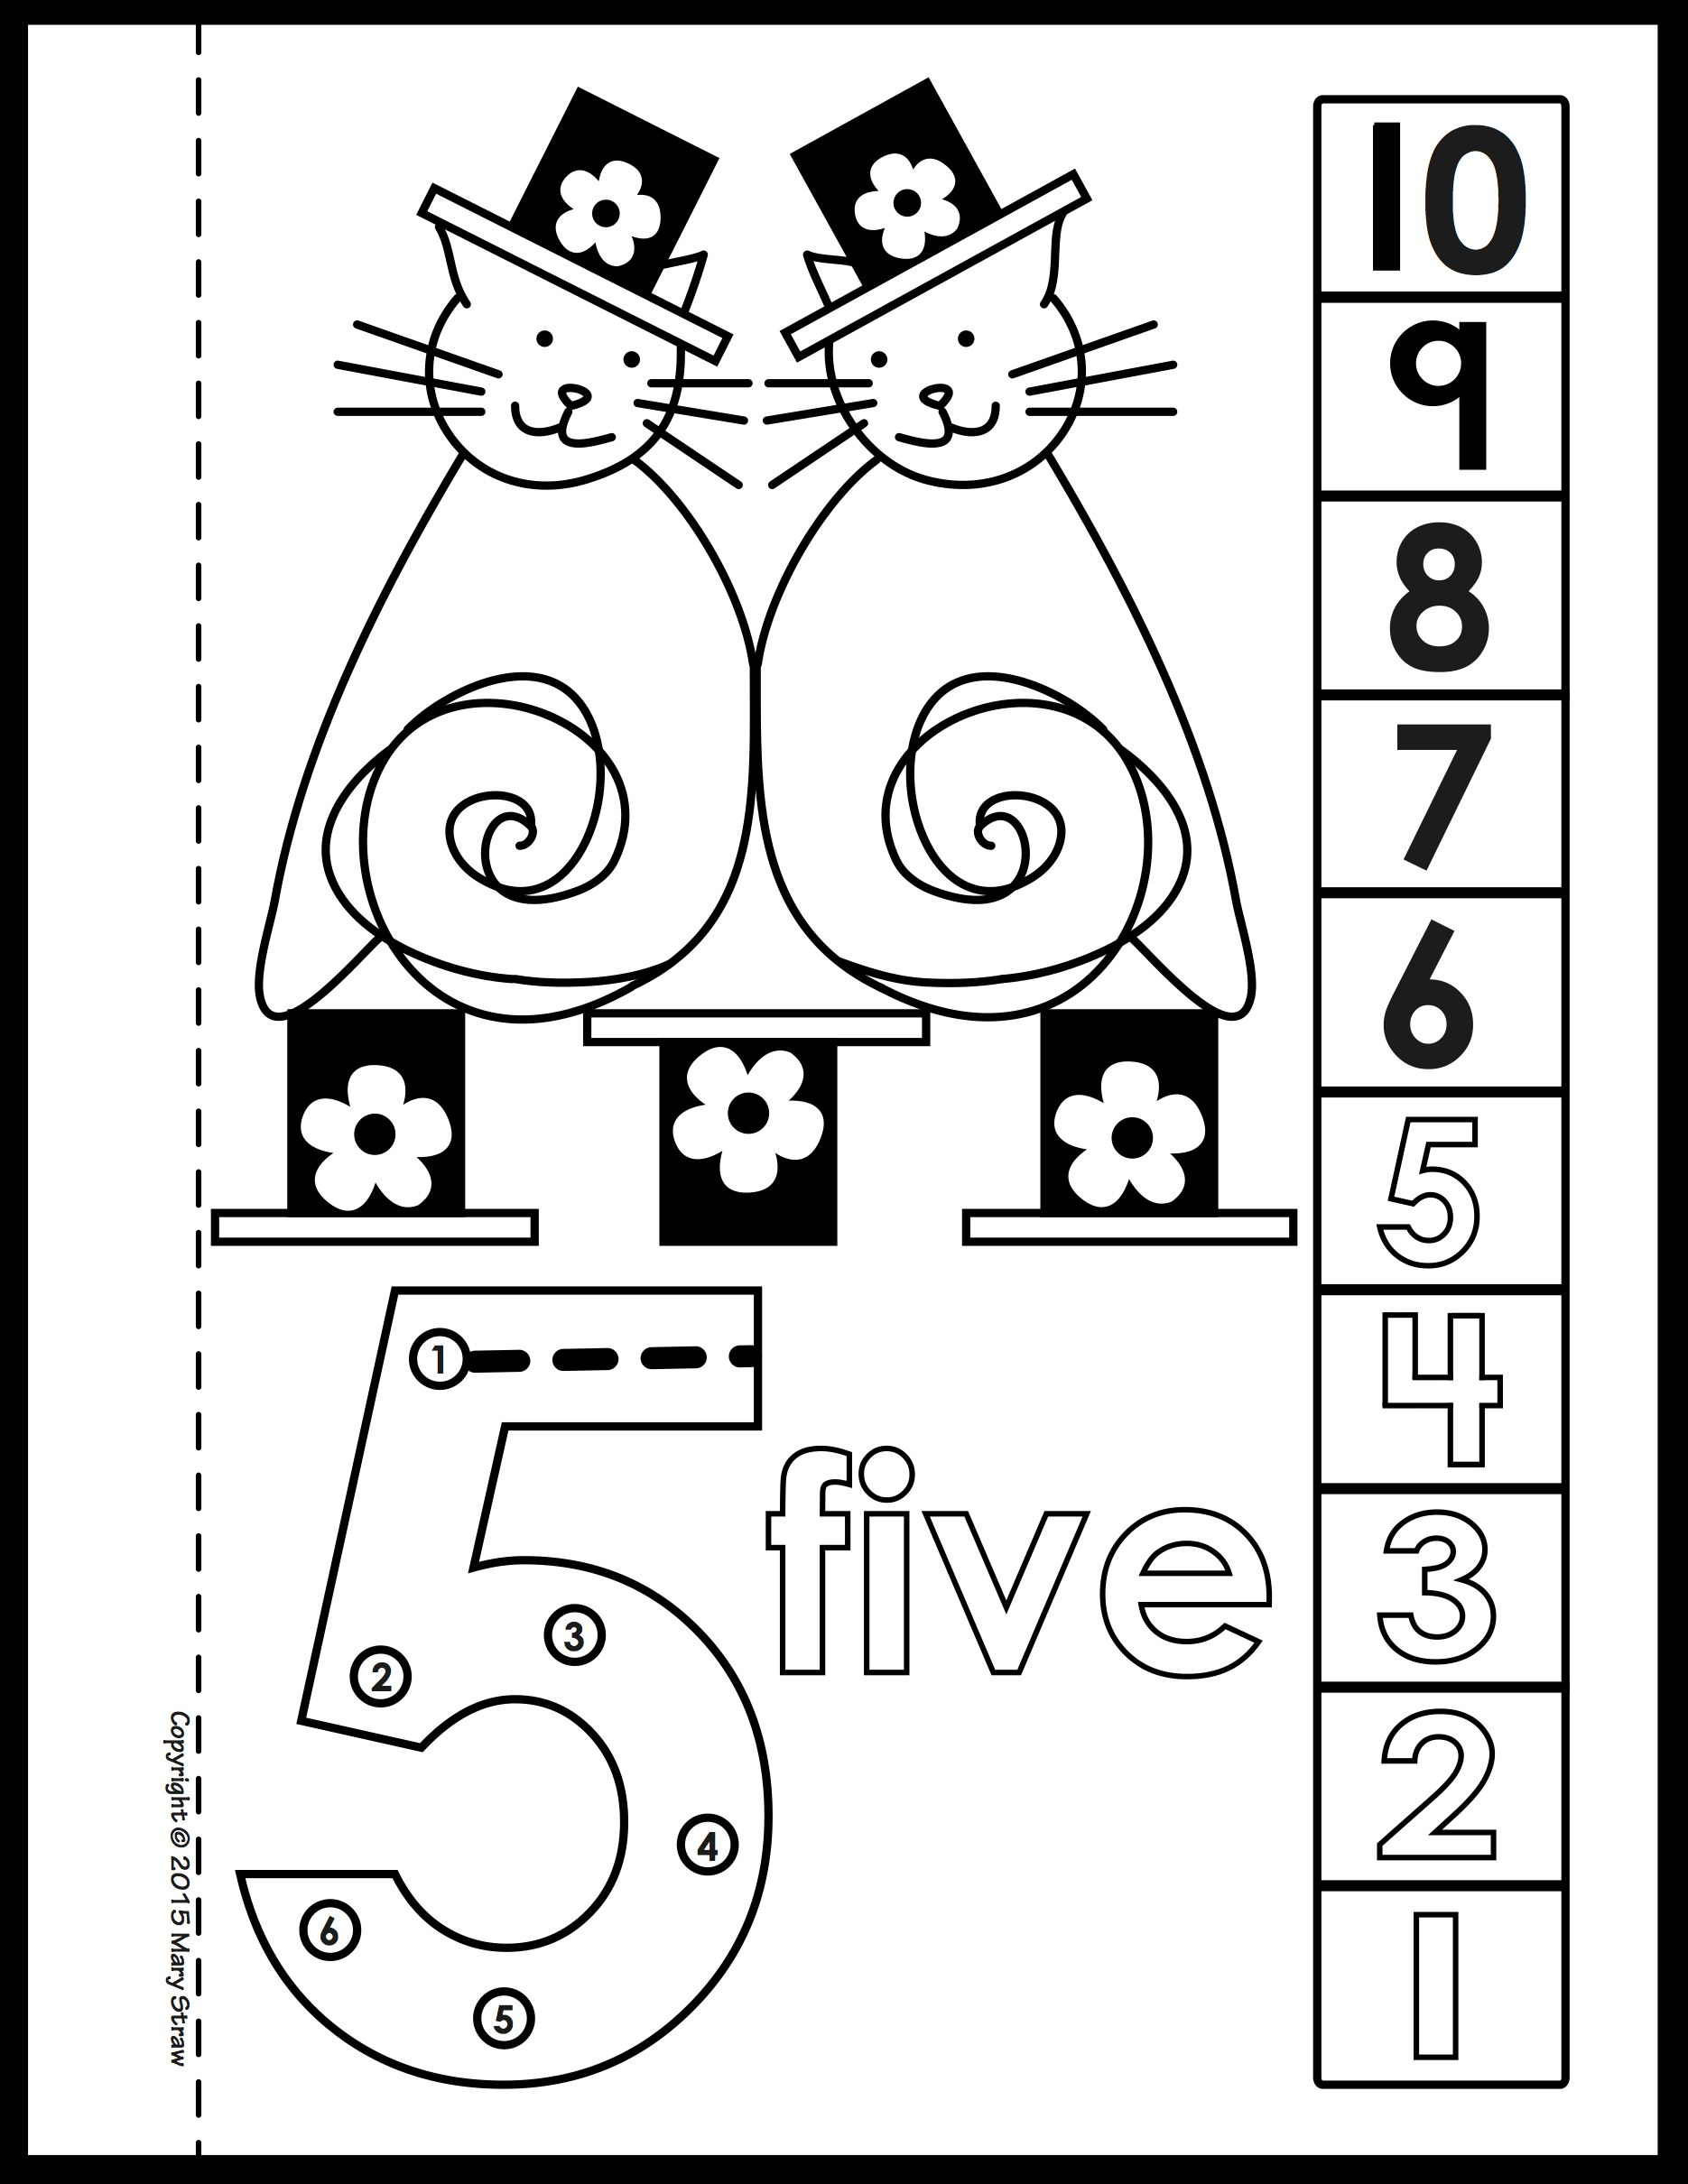 Dot To Dot Number Book 1 20 Activity Coloring Pages In